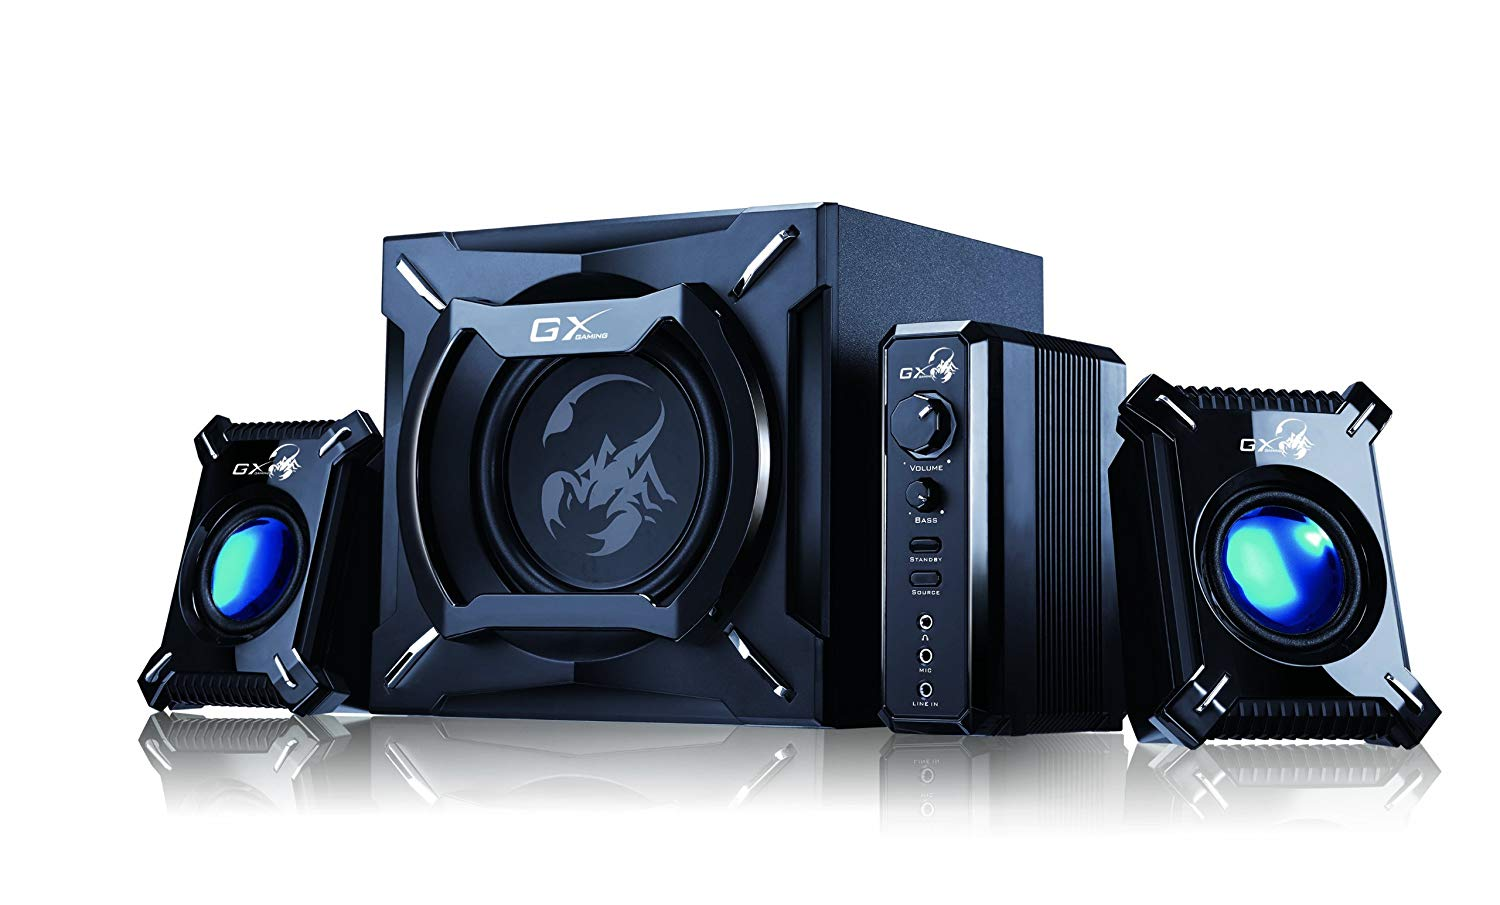 Gaming Speaker: Genius SW-G2.1 2000 2.1 Channel 45 Watts RMS Gaming Woofer Speaker System for Android, Apple Devices, Tablets, Laptops, PC